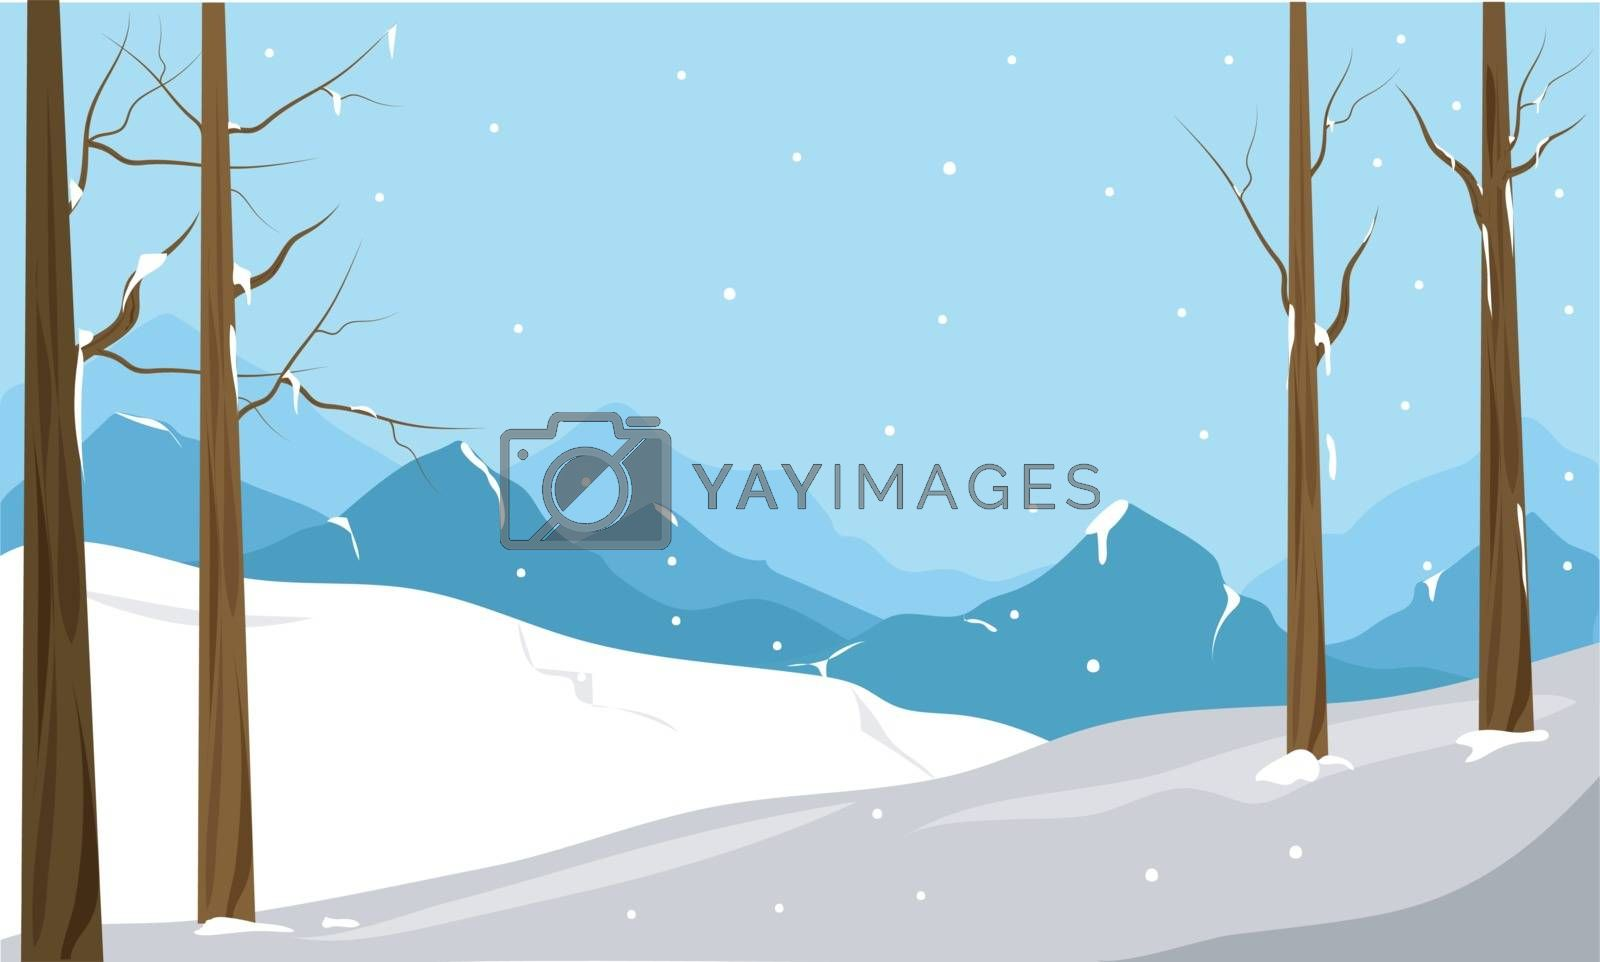 Beautiful winter landscape with snowfall, mountains, trees and snowy fields.